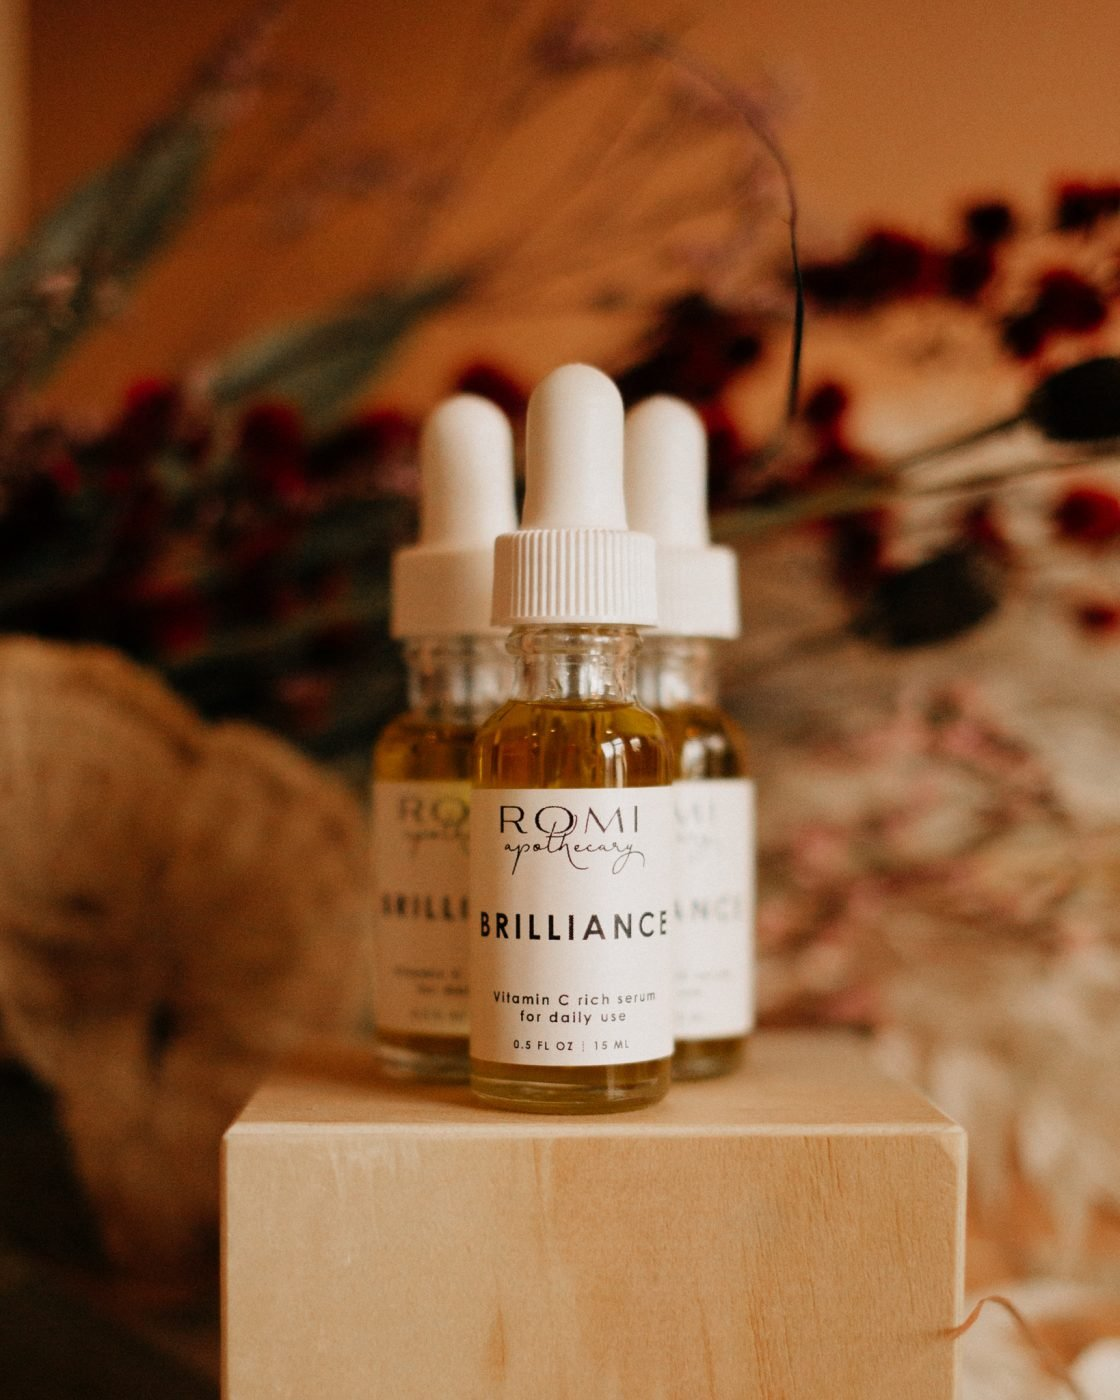 brilliance serum from romi apothecary